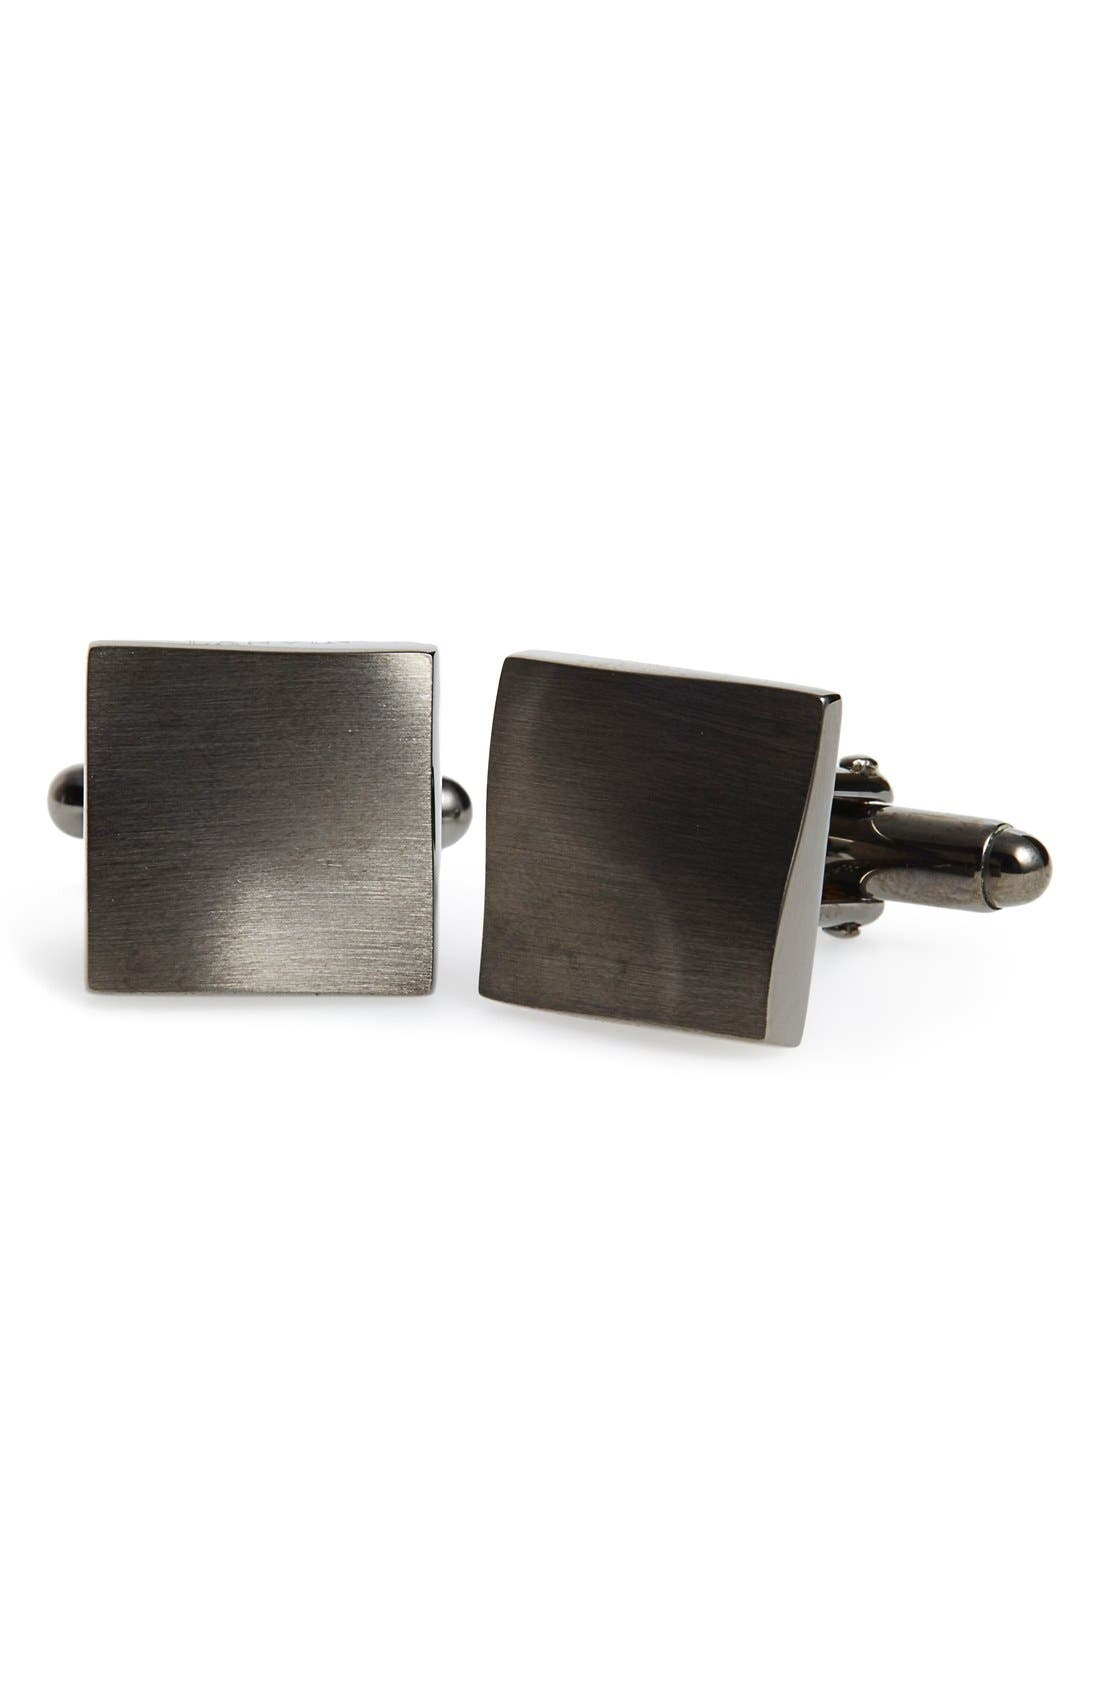 'Twisted Plaque' Square Cuff Links,                             Main thumbnail 1, color,                             040